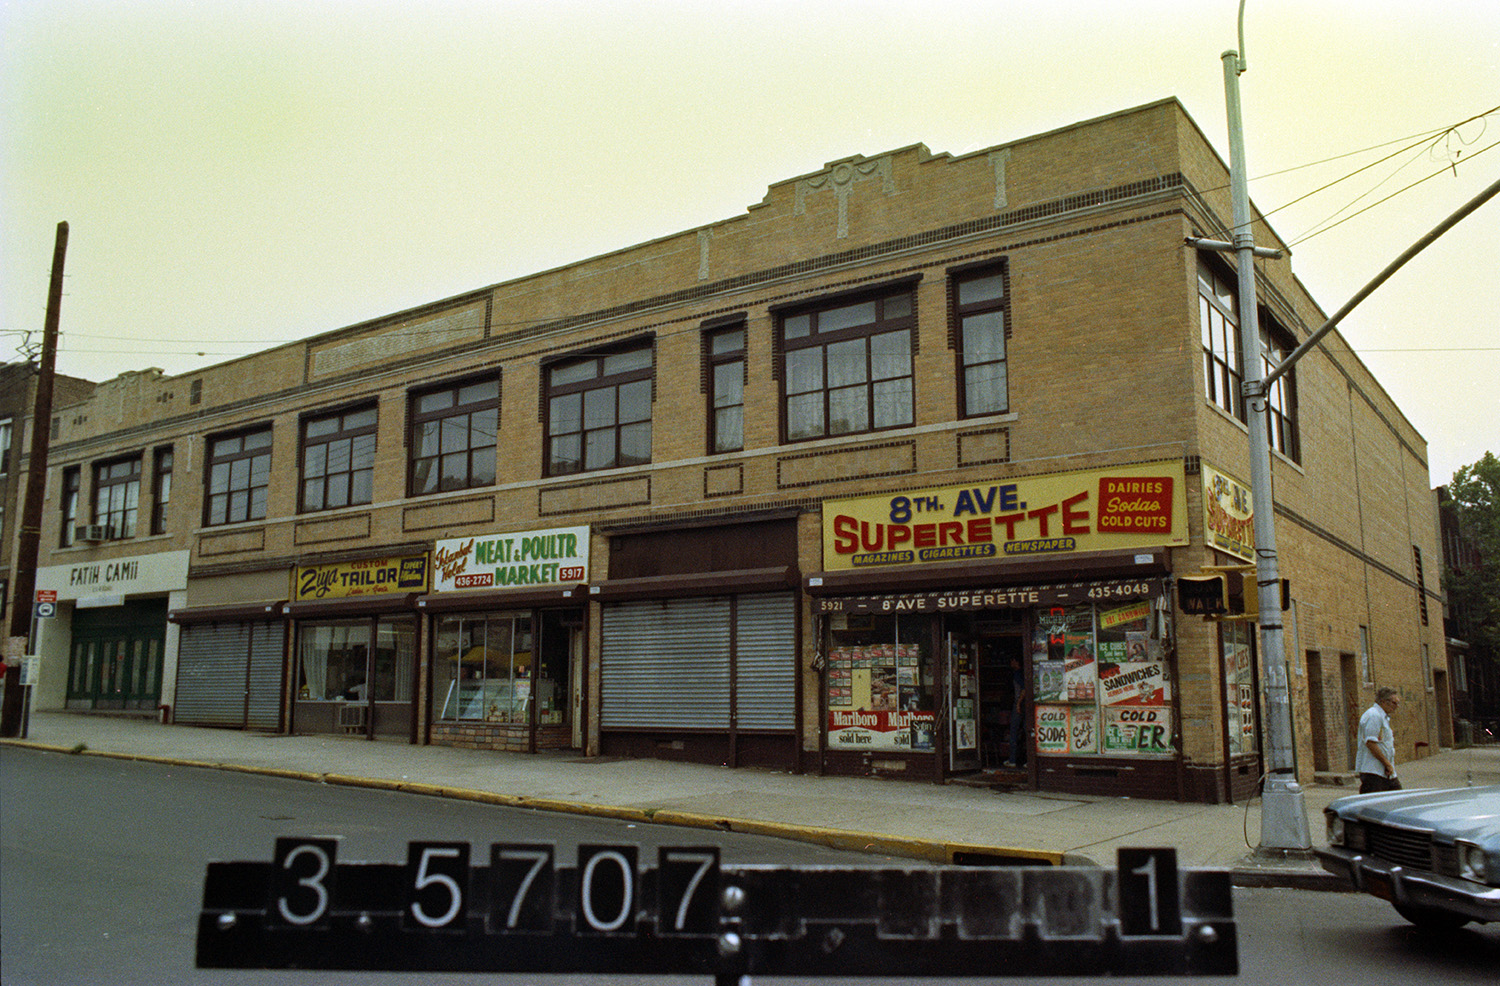 5911 8th Ave. (at 59th St.), Brooklyn, 1983-1988. NYC Municipal Archives.